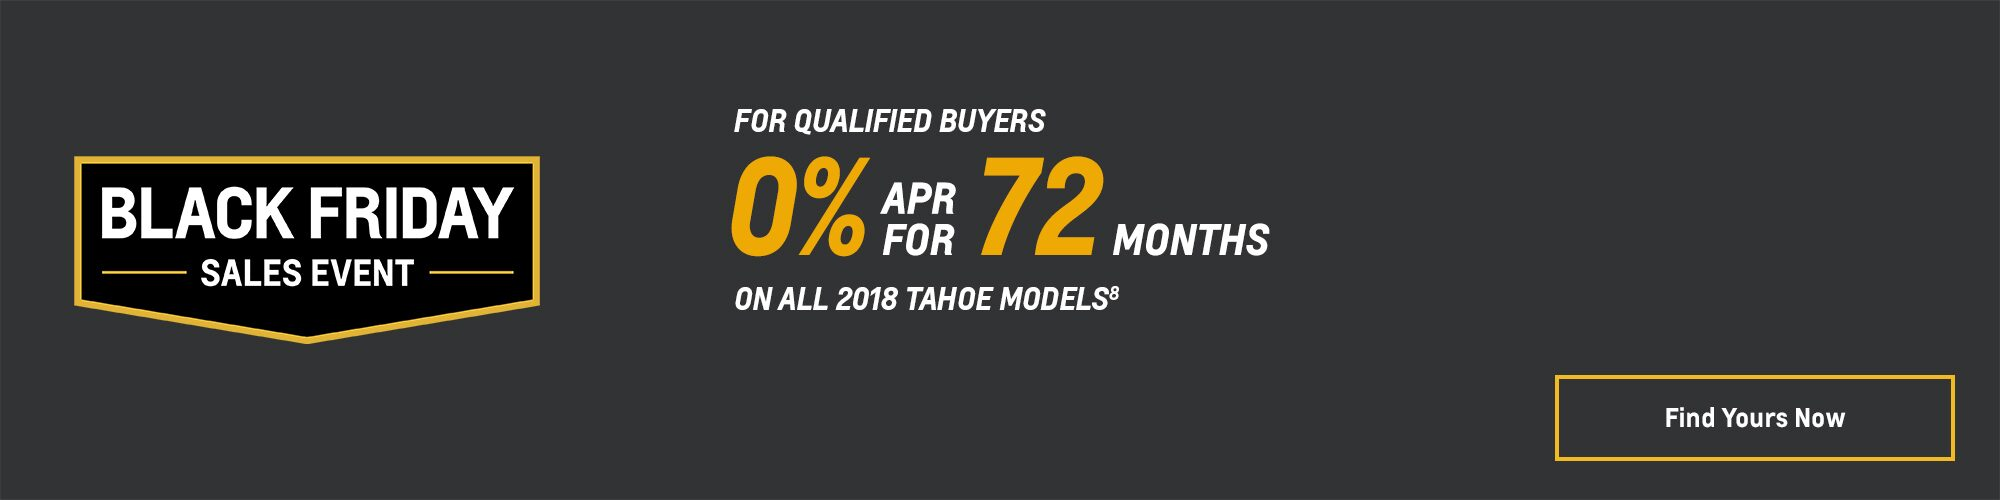 Black Friday Chevy Deals and Offers: 2018 Tahoe 0% APR